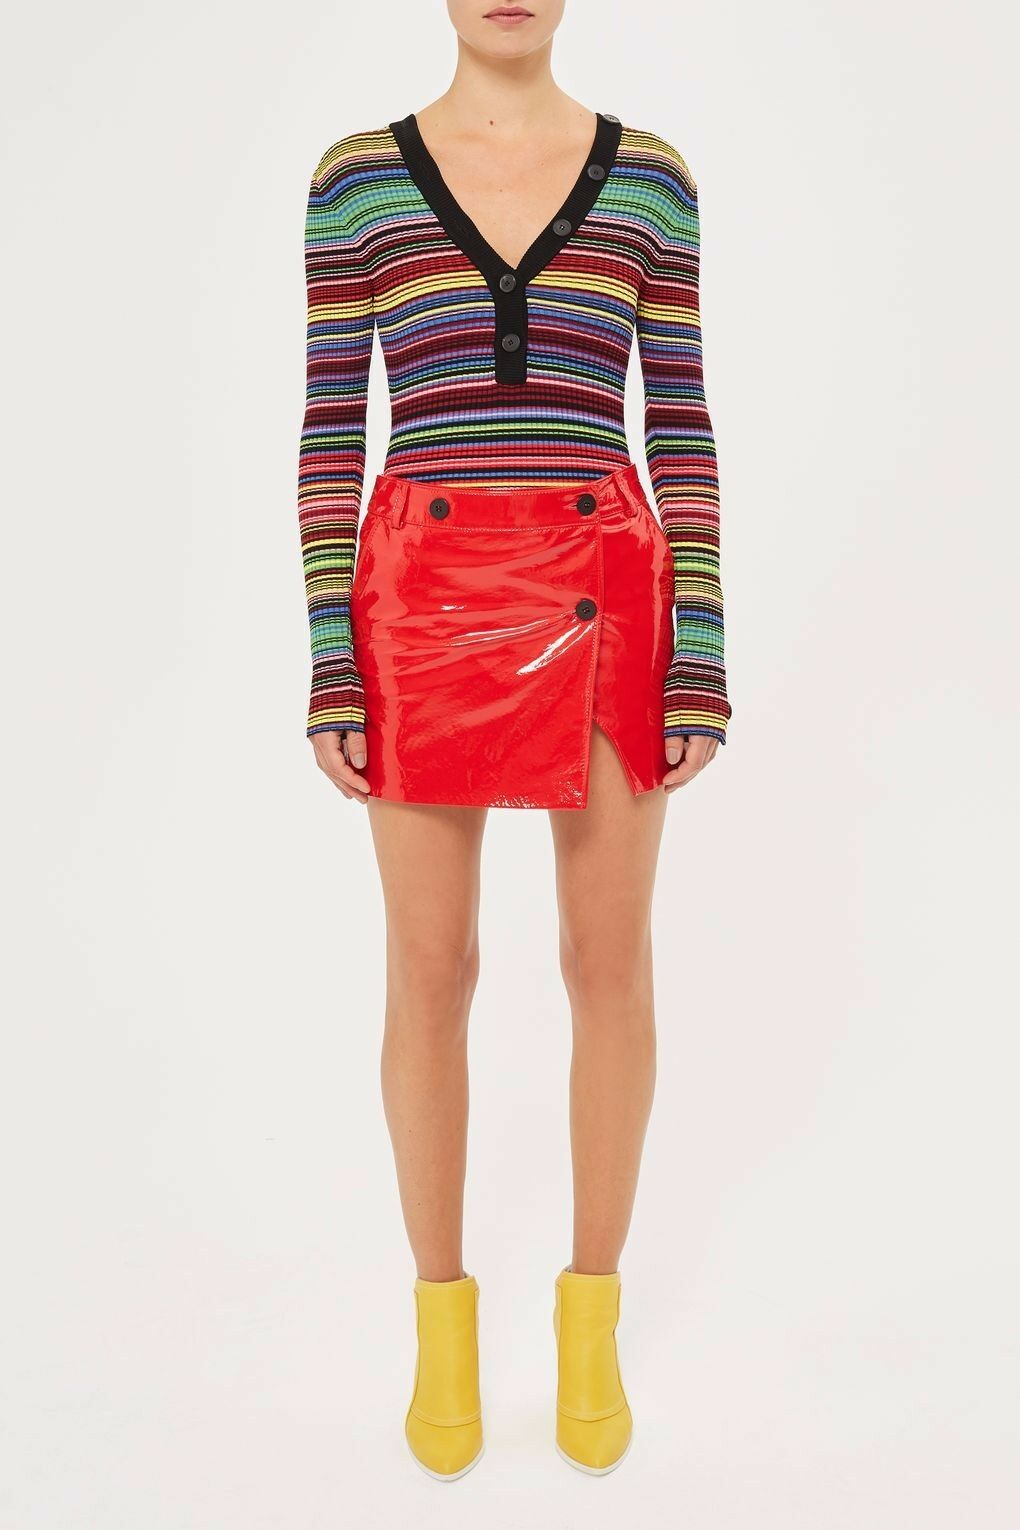 Topshop Heaton Patent Leather Skirt Size 8 36 US 4 RRP